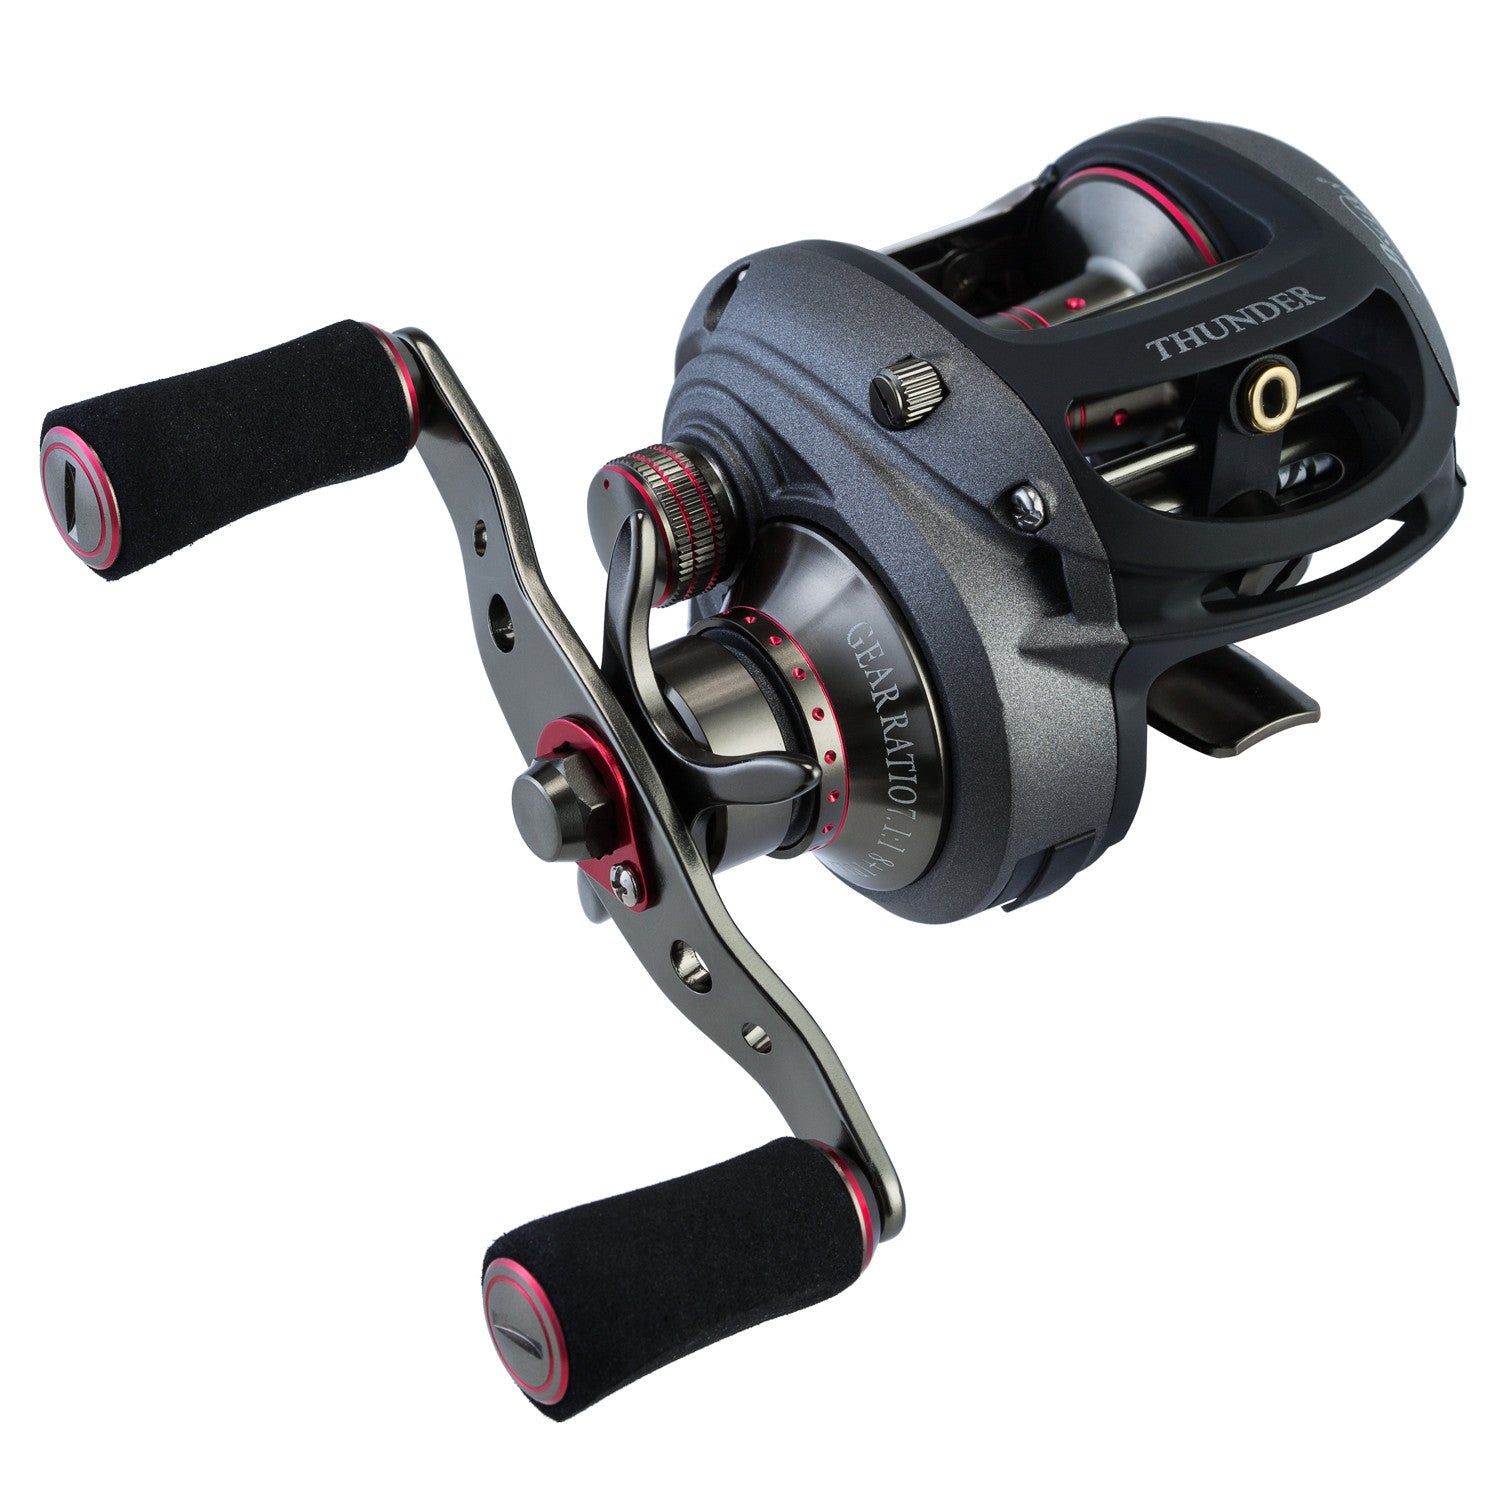 Piscifun thunder right left handed baitcasting reel for Baitcasting fishing reels